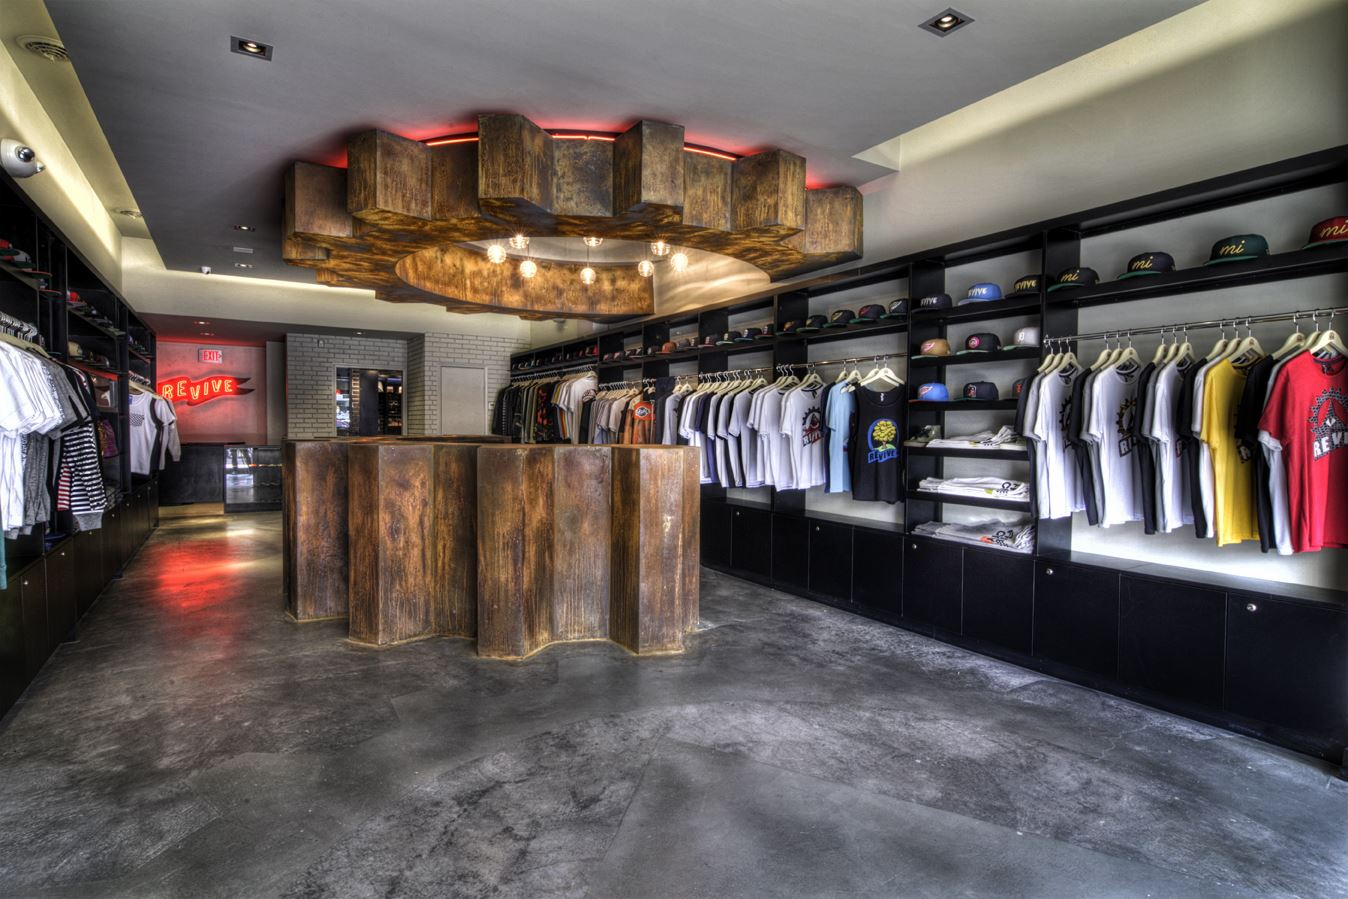 Retail design ideas joy studio design gallery photo - Interior design jobs in michigan ...